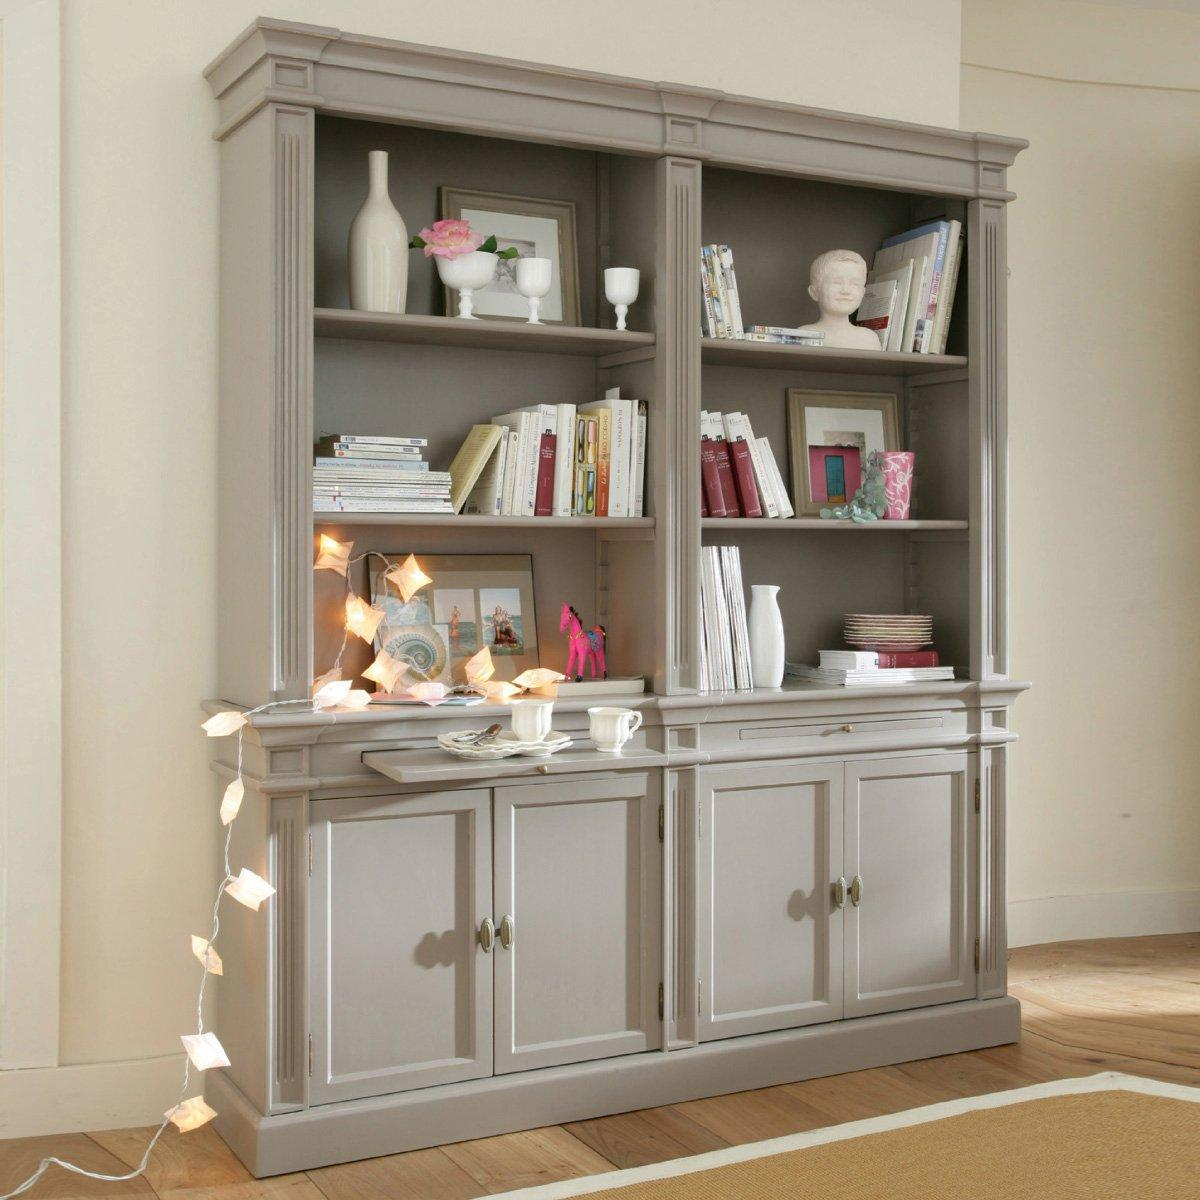 Laredoute mobilier